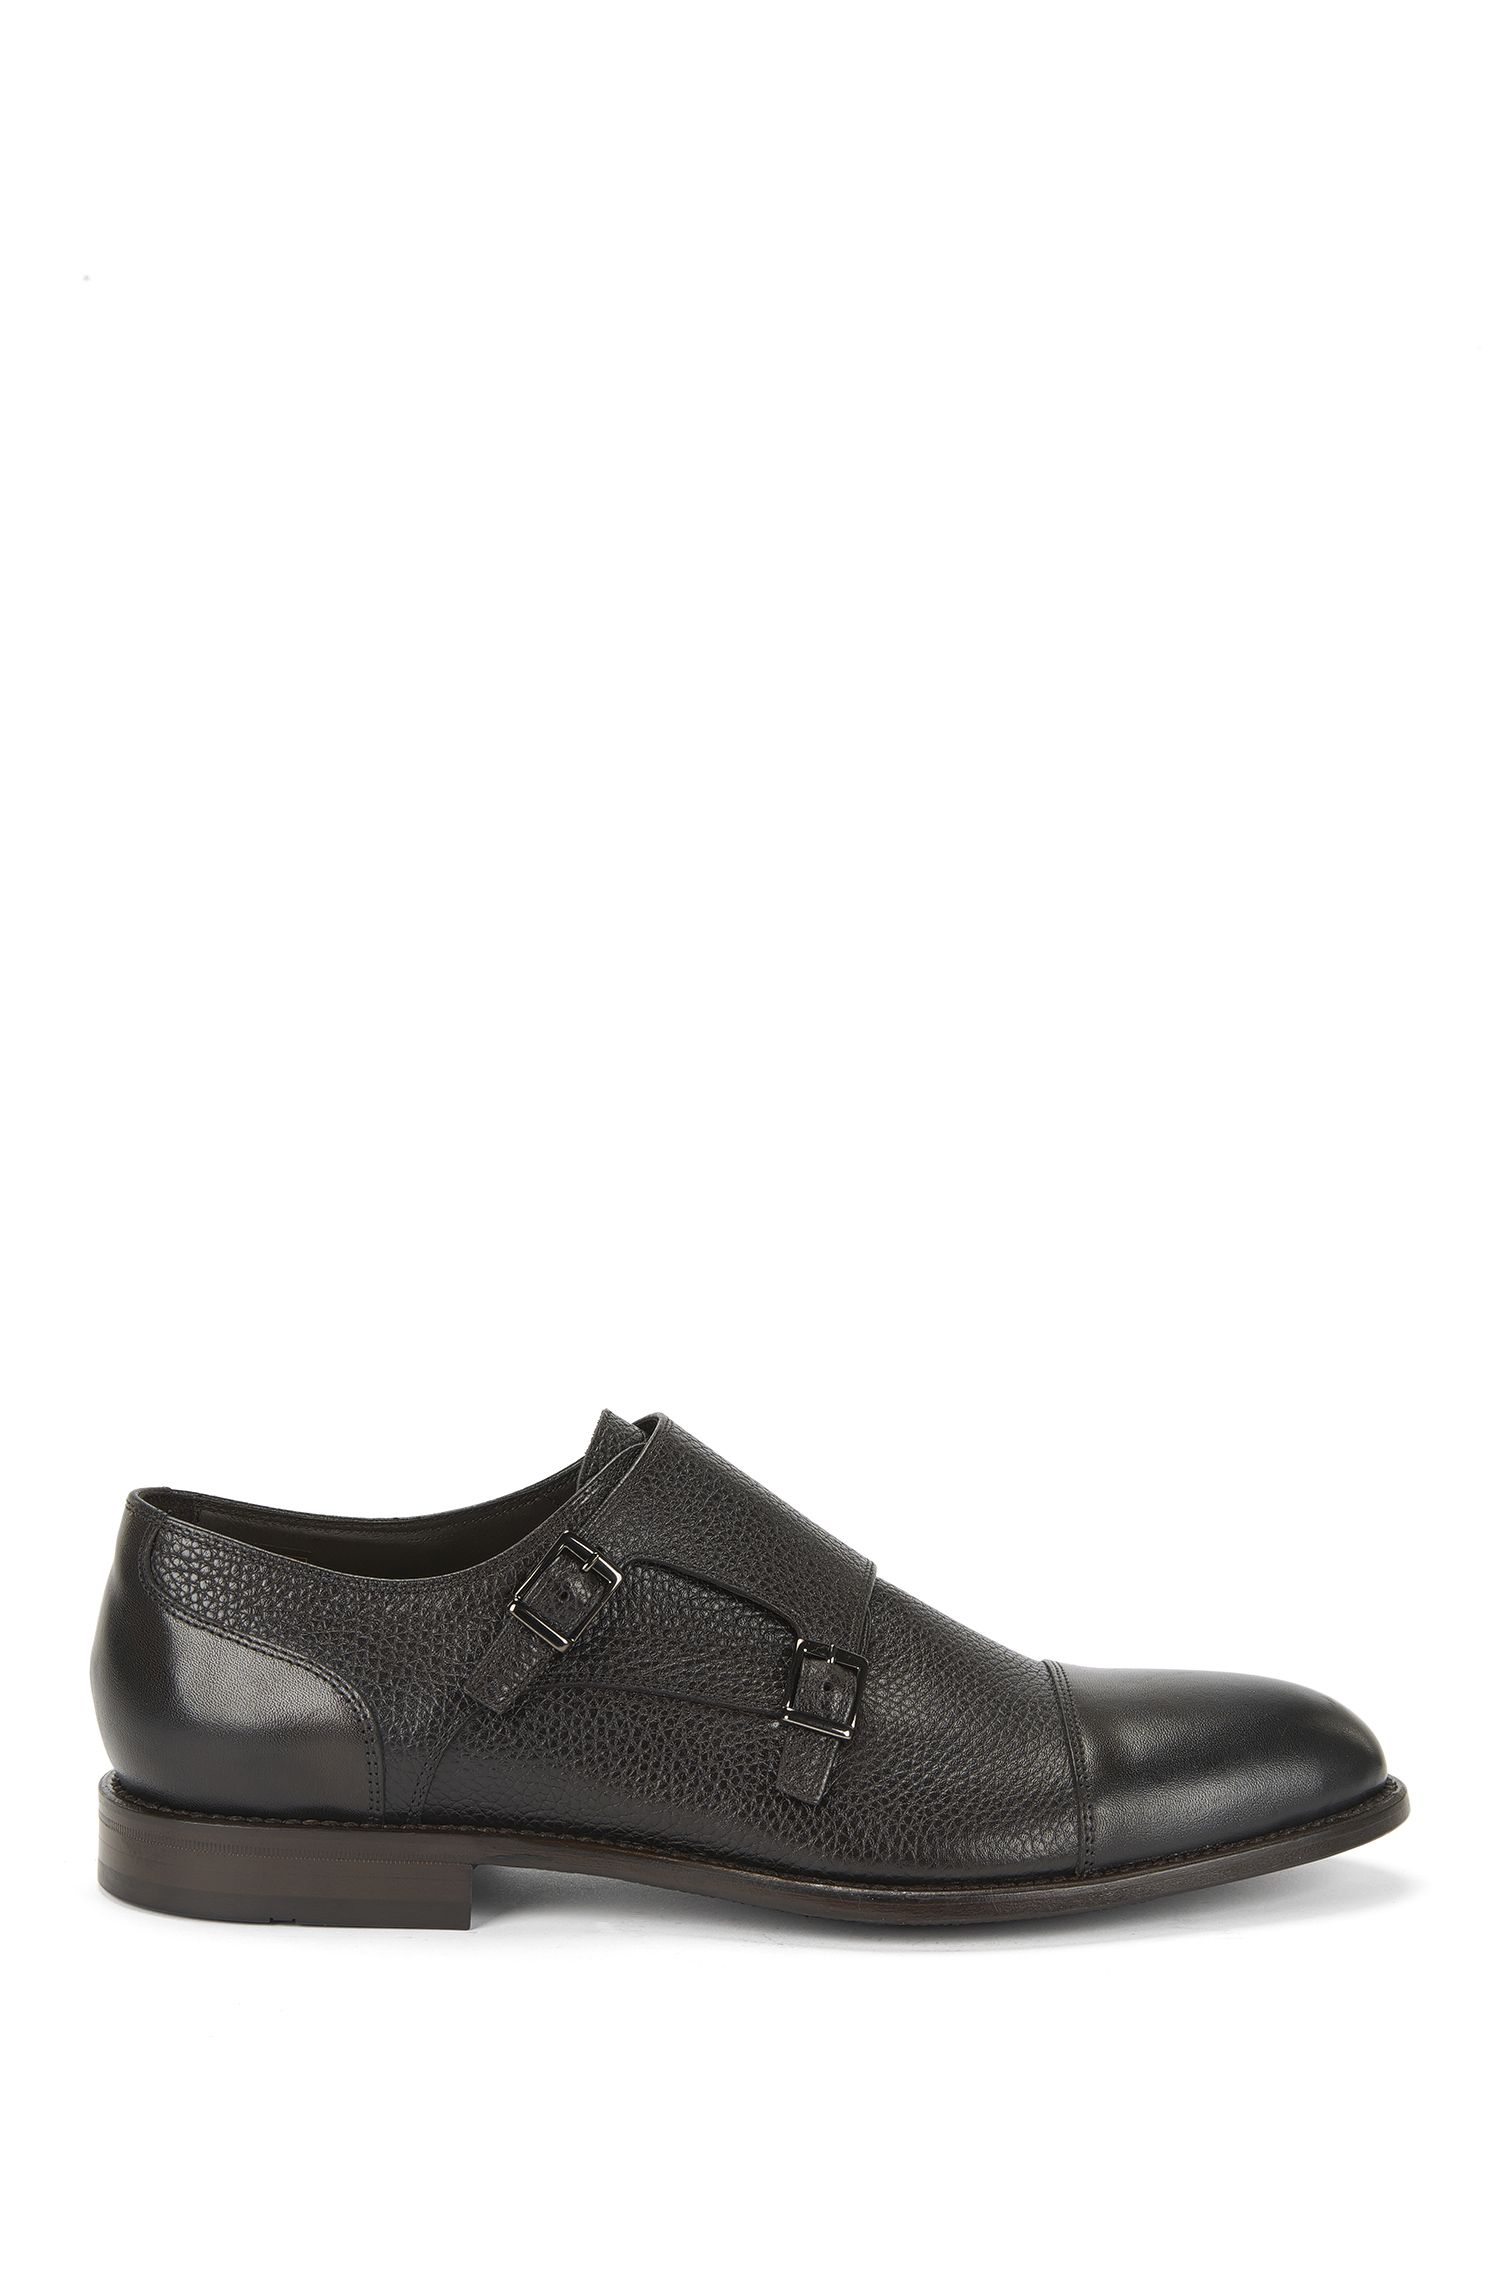 'Stockholm Monk Mxct' | Italian Calfskin Double Monk Strap Dress Shoes